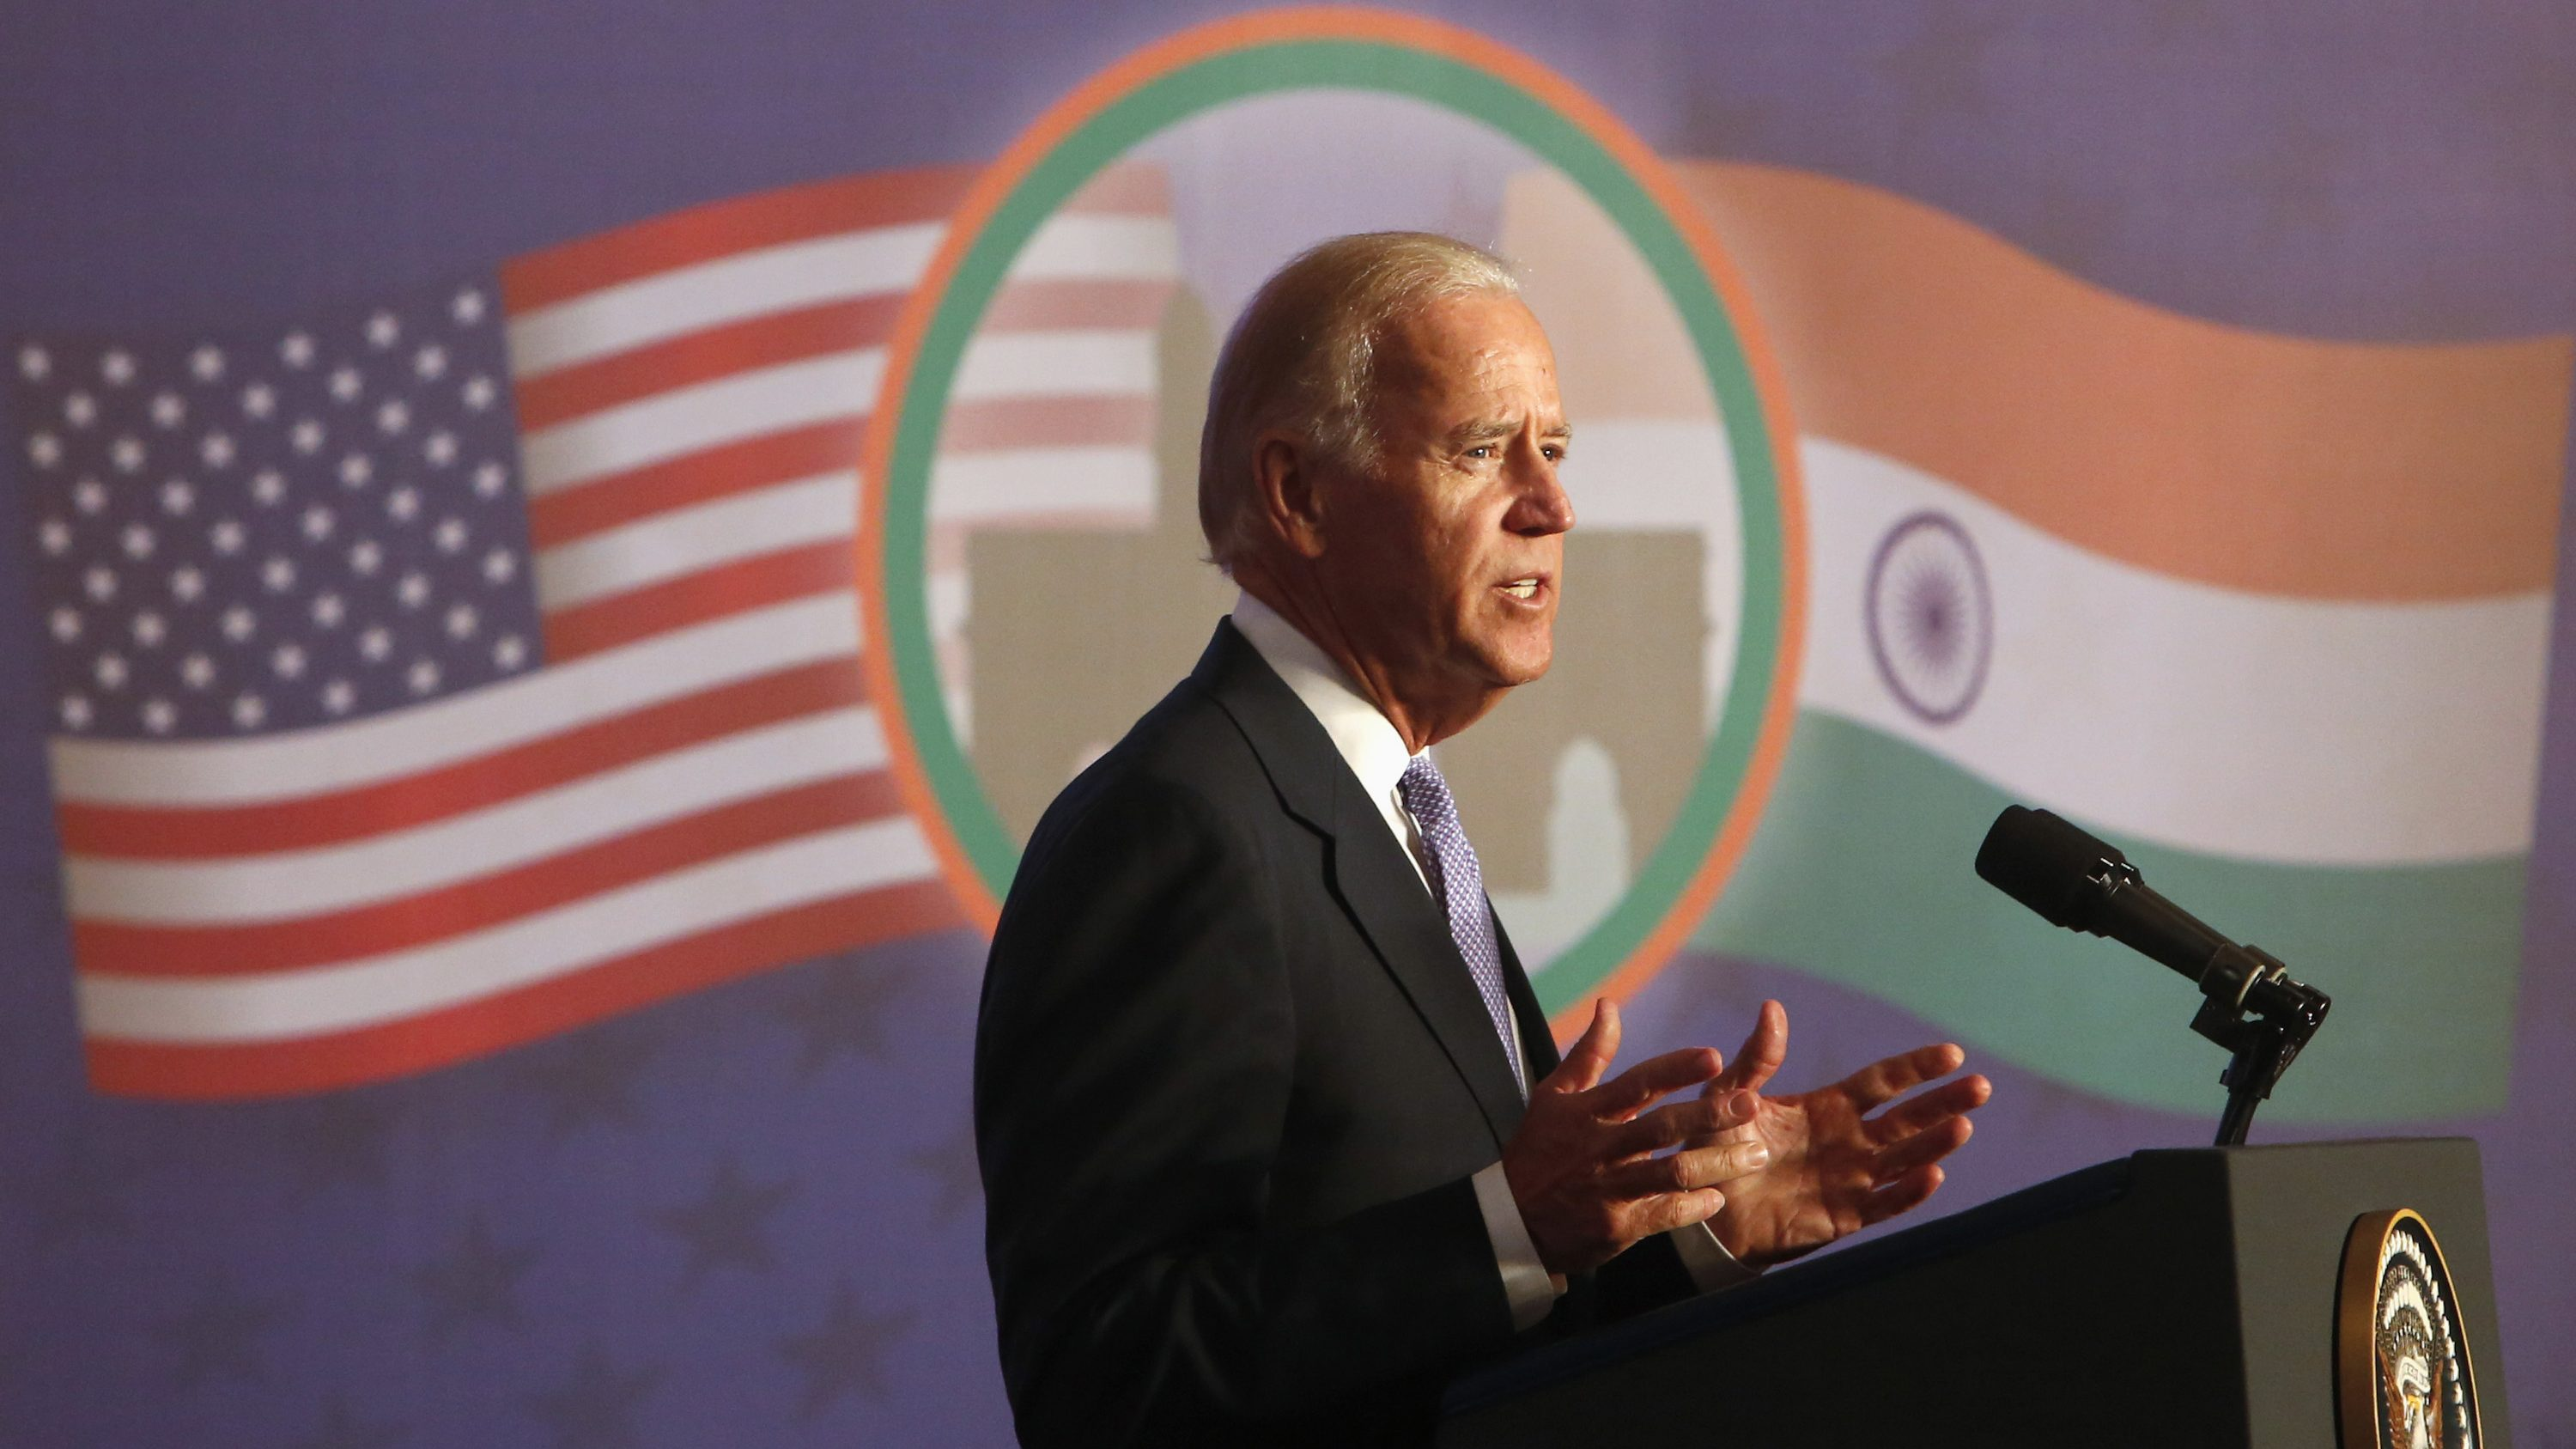 U.S. Vice President Biden delivers an address at the Bombay Stock Exchange in Mumbai